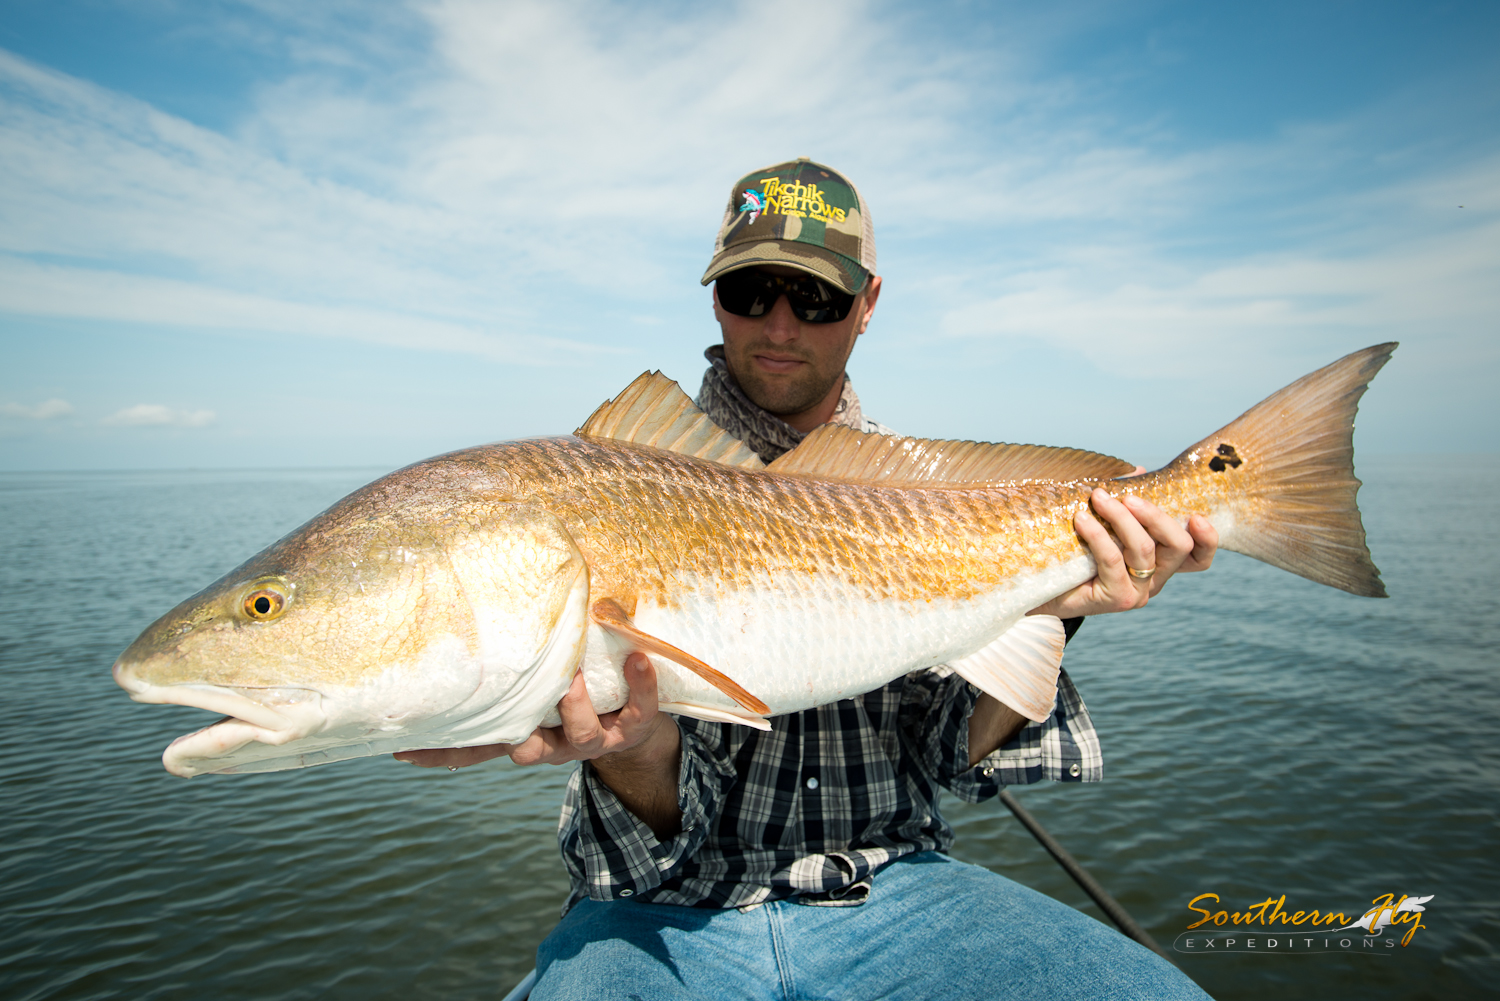 Rhode Island Anglers Fly Fishing New Orleans - by Southern Fly Expeditions of Louisiana